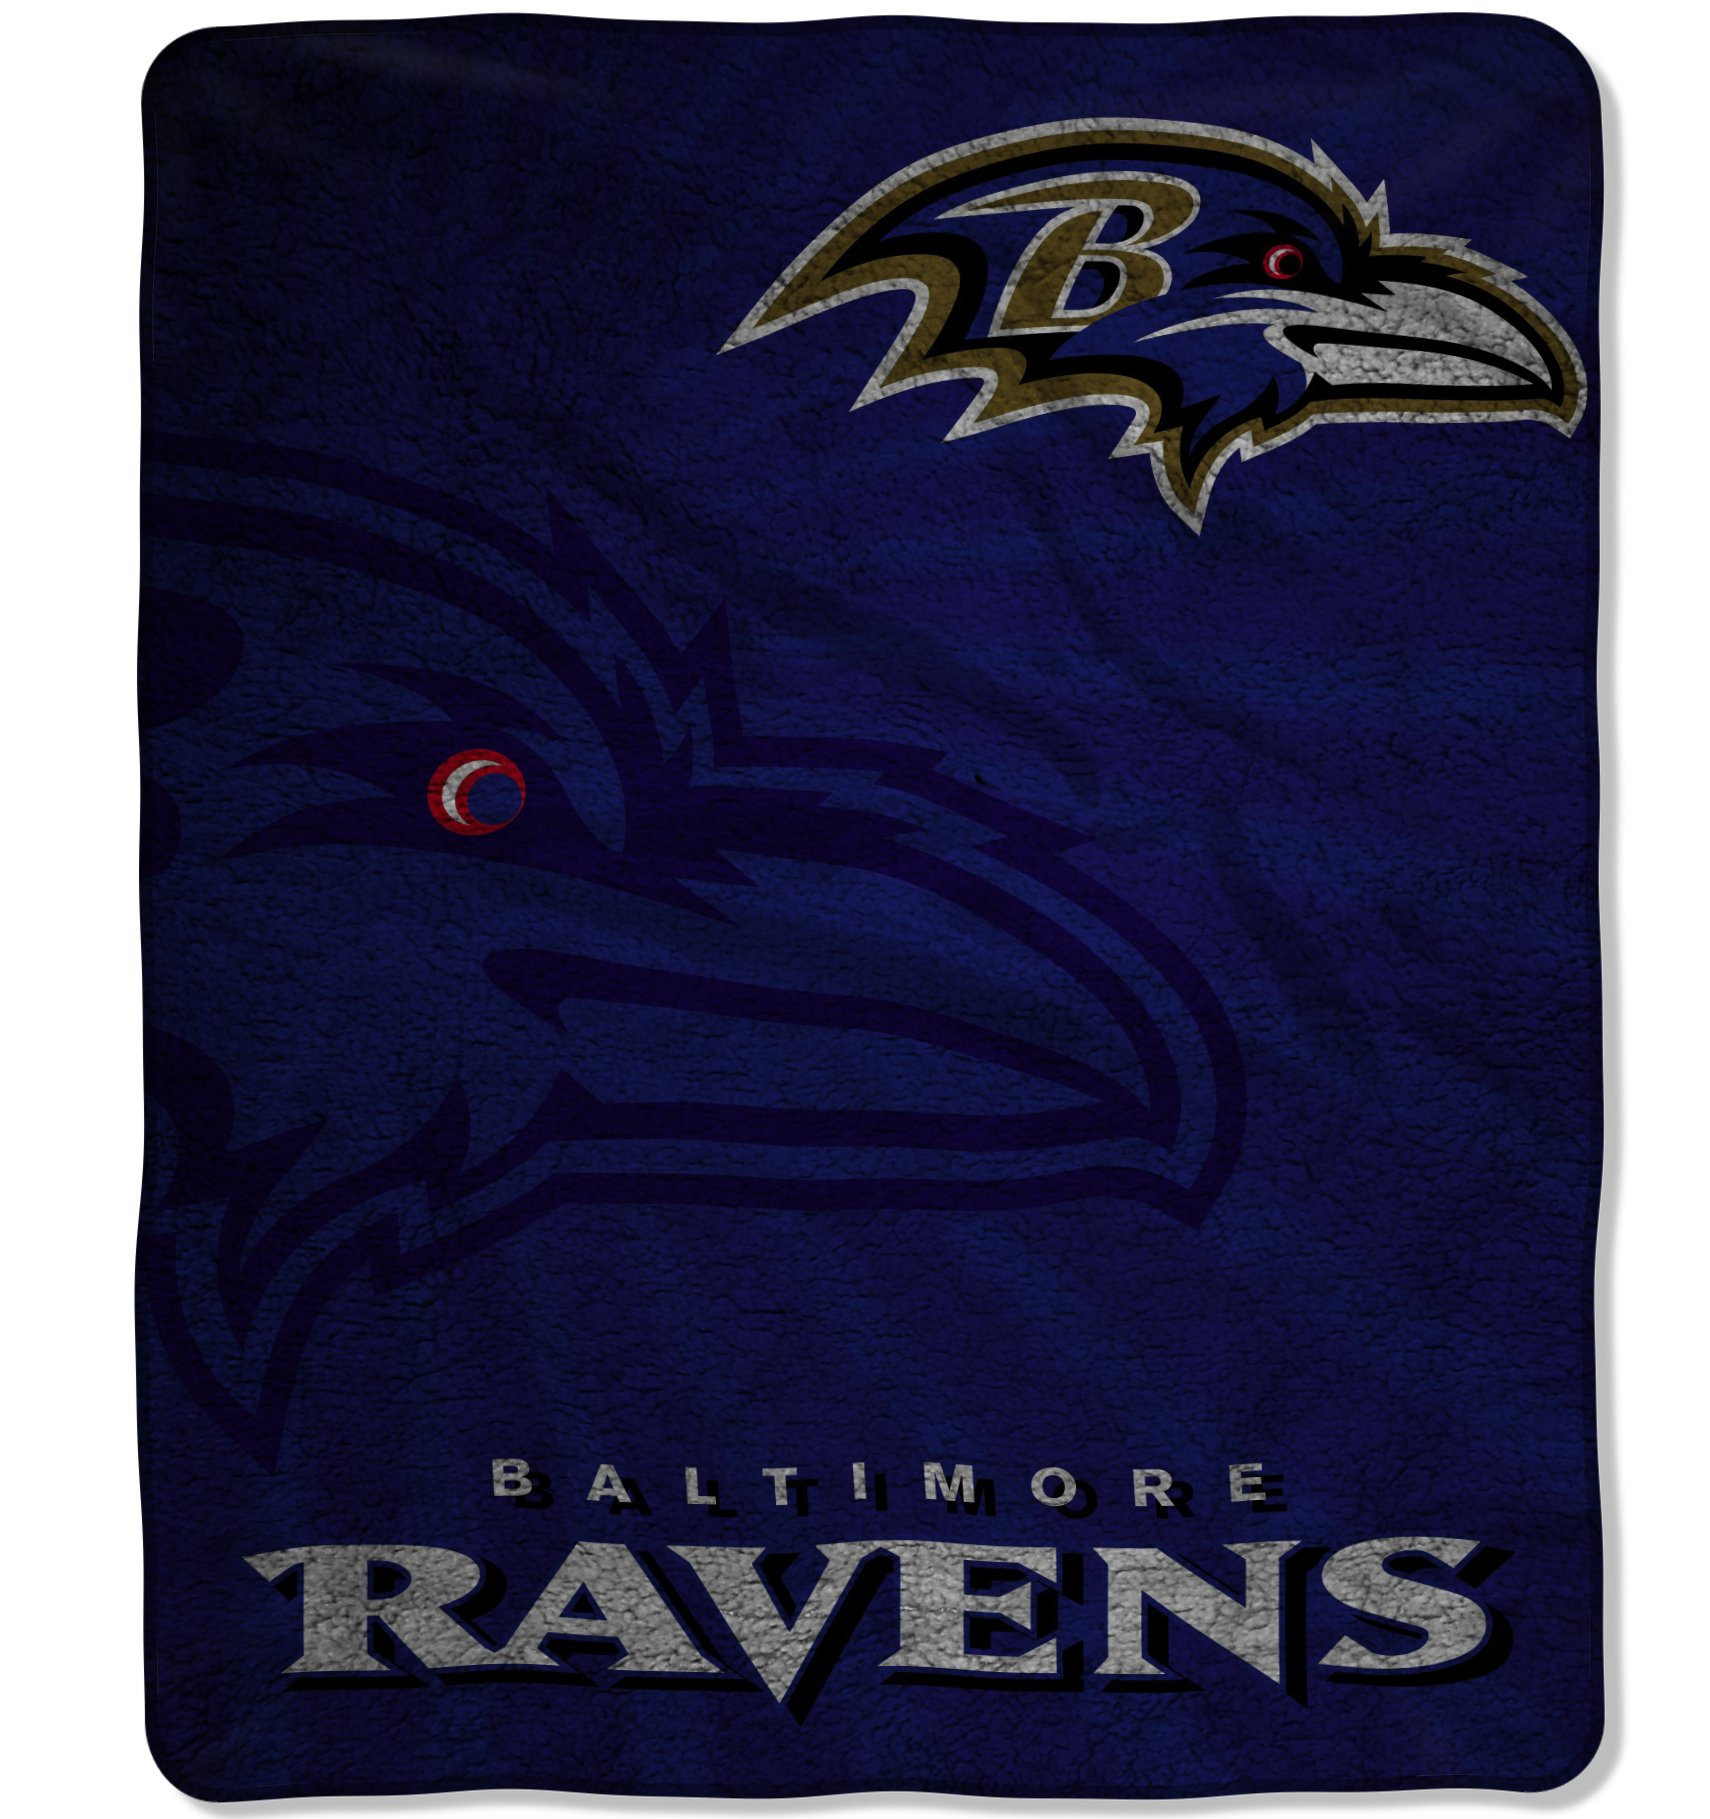 The Northwest Company Officially Licensed NFL Baltimore Ravens Strobe Sherpa on Sherpa Throw Blanket, 50'' x 60'', Multi Color by The Northwest Company